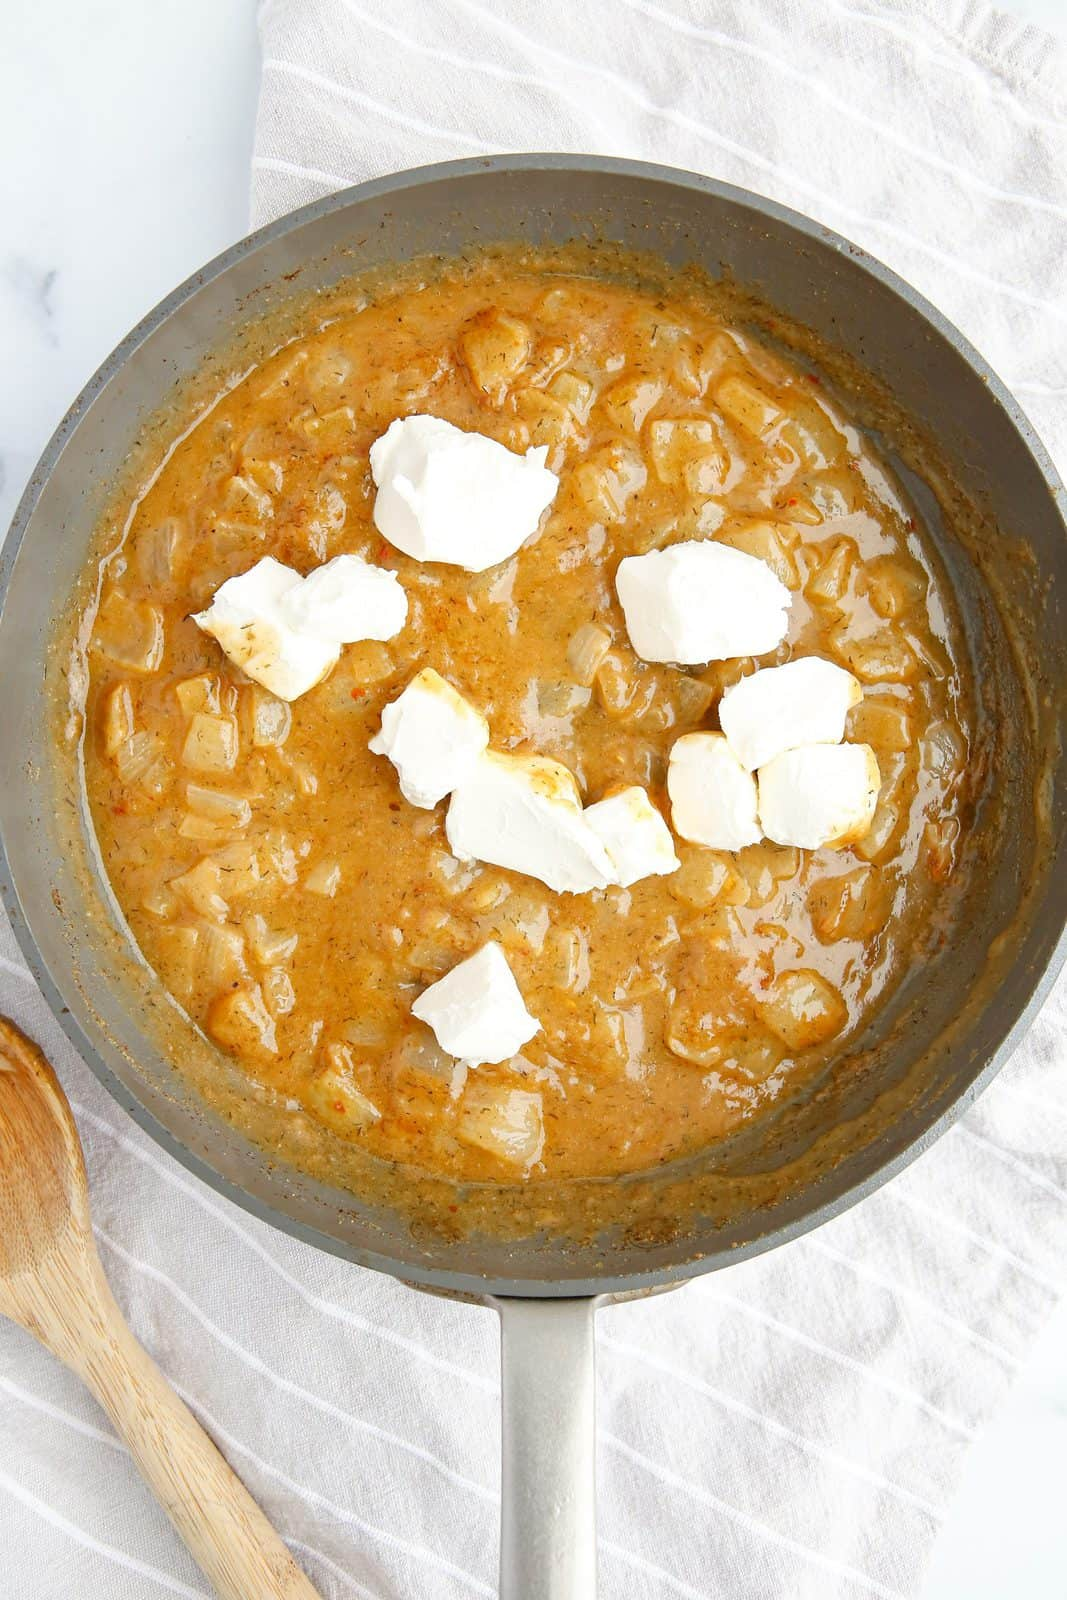 Melted butter, flour, onion, spices and broth mixture with cream cheese chunks and milk added.